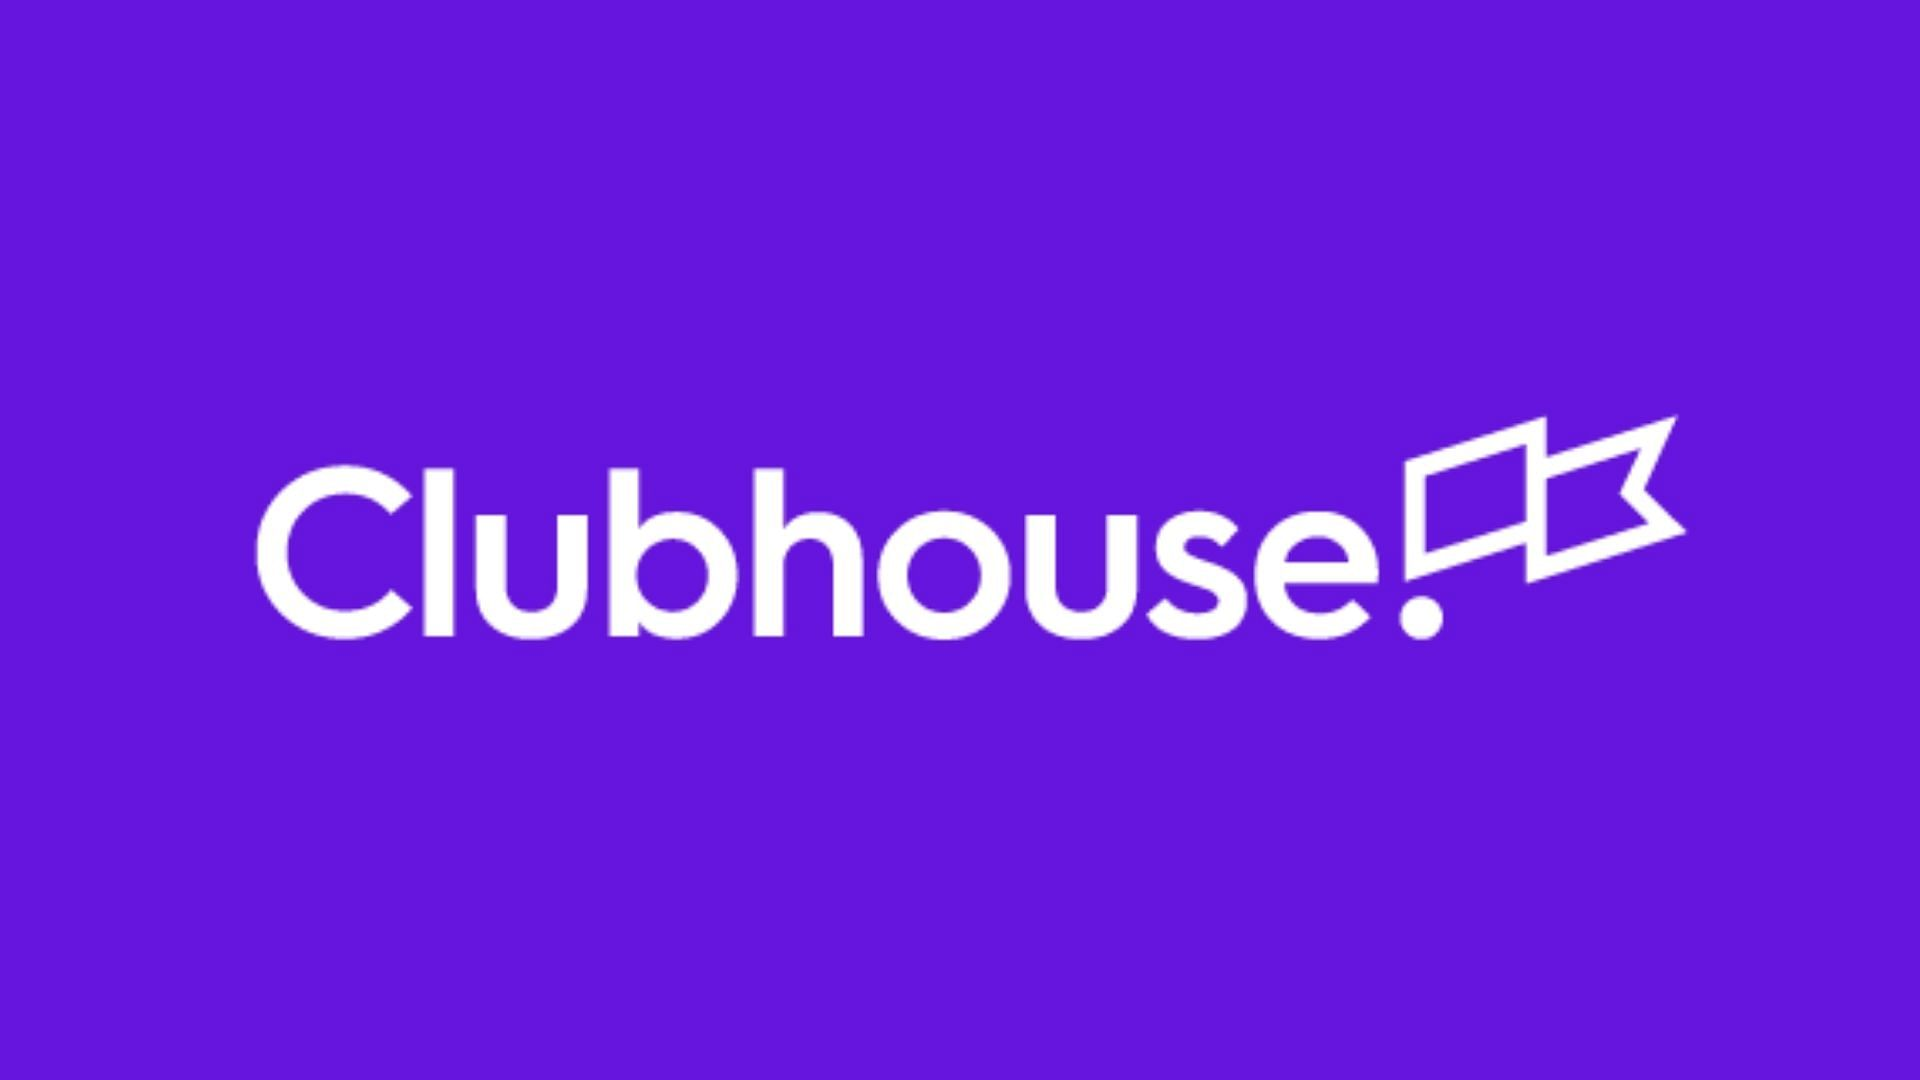 clubhouse?blur=25